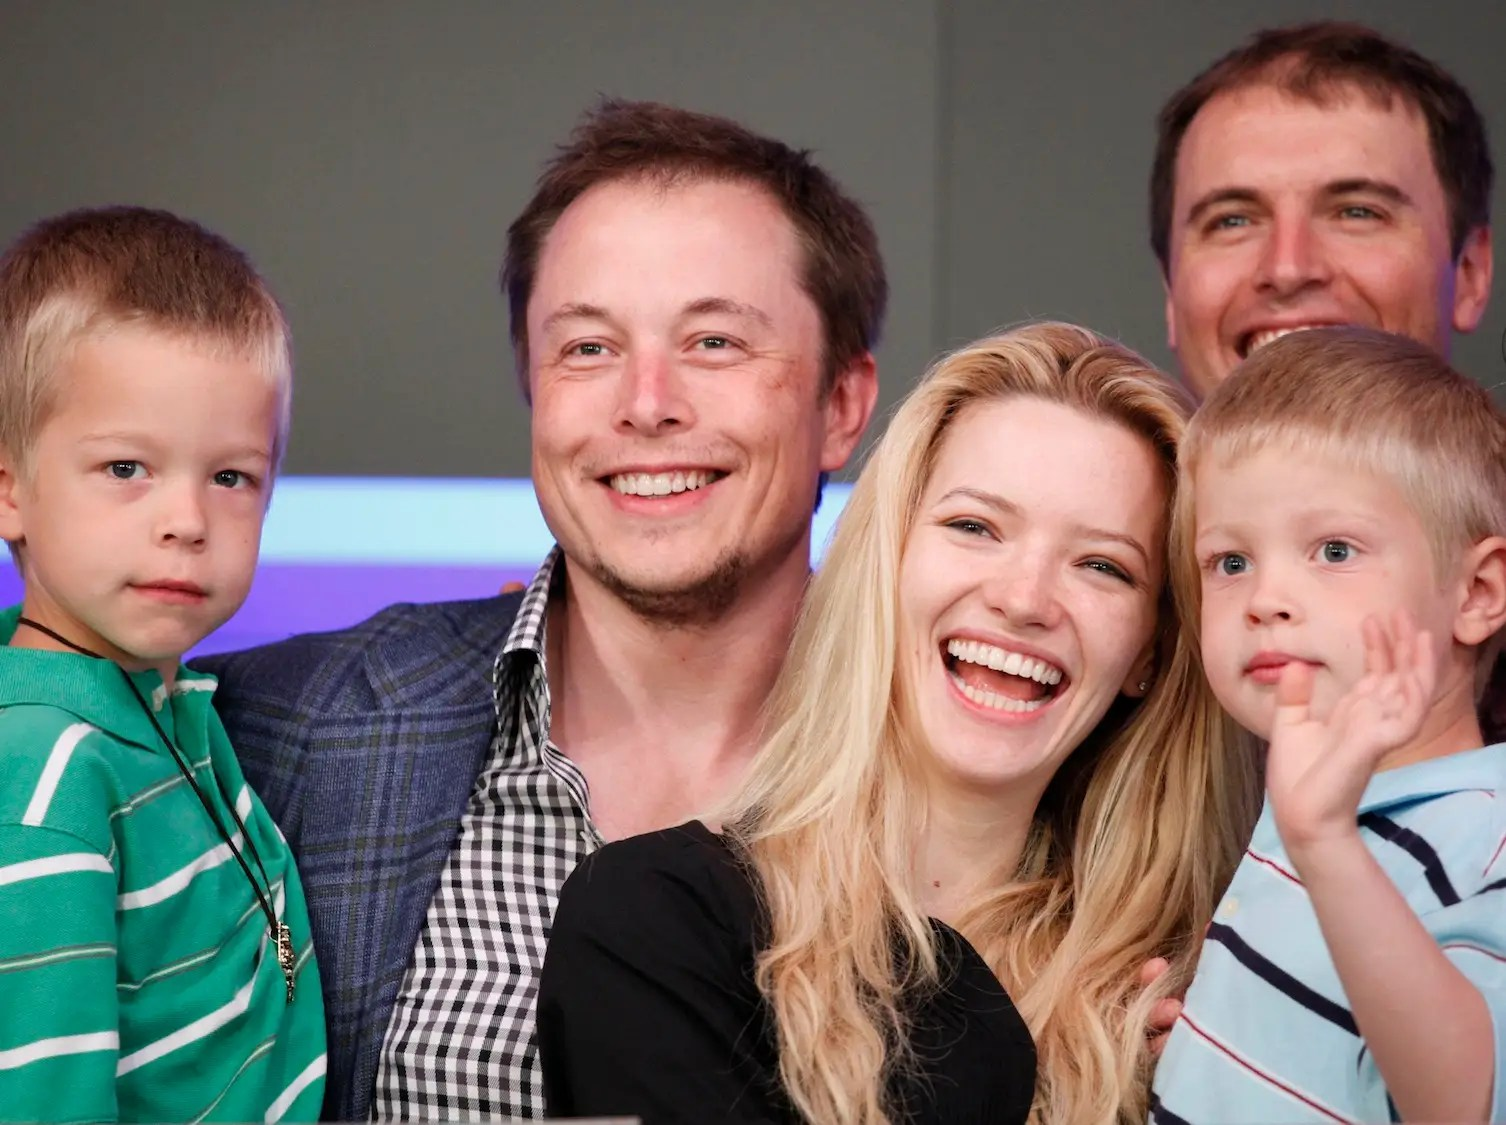 Around the same time, Musk was going through a divorce with Justine Musk, a Canadian author, with whom he had six sons.